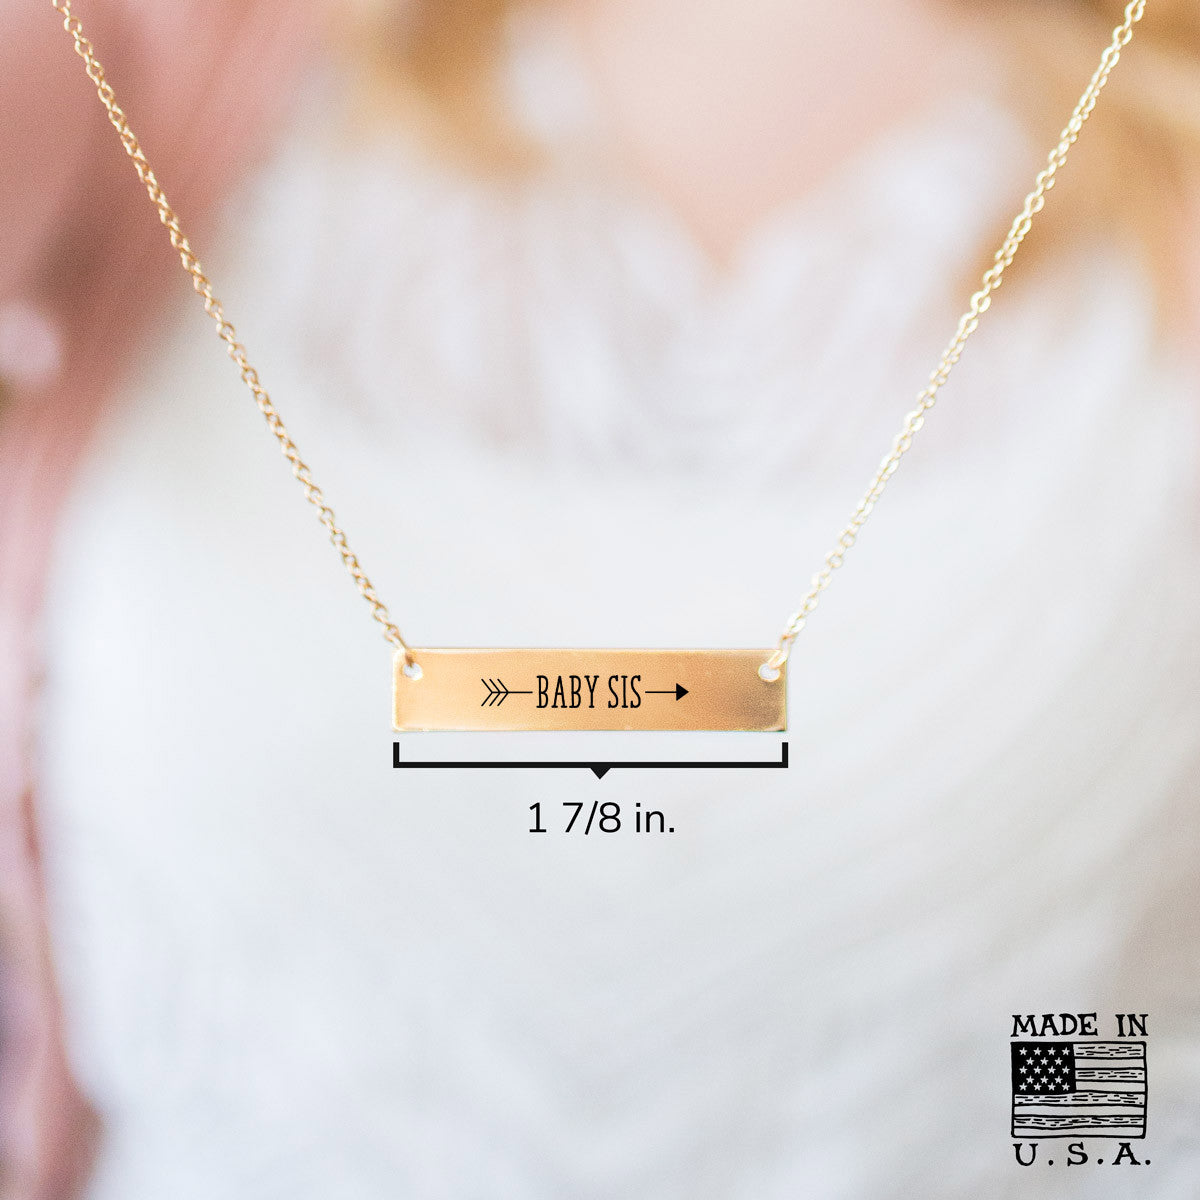 Baby Sister Arrow Gold / Silver Bar Necklace - Sister Gifts - pipercleo.com